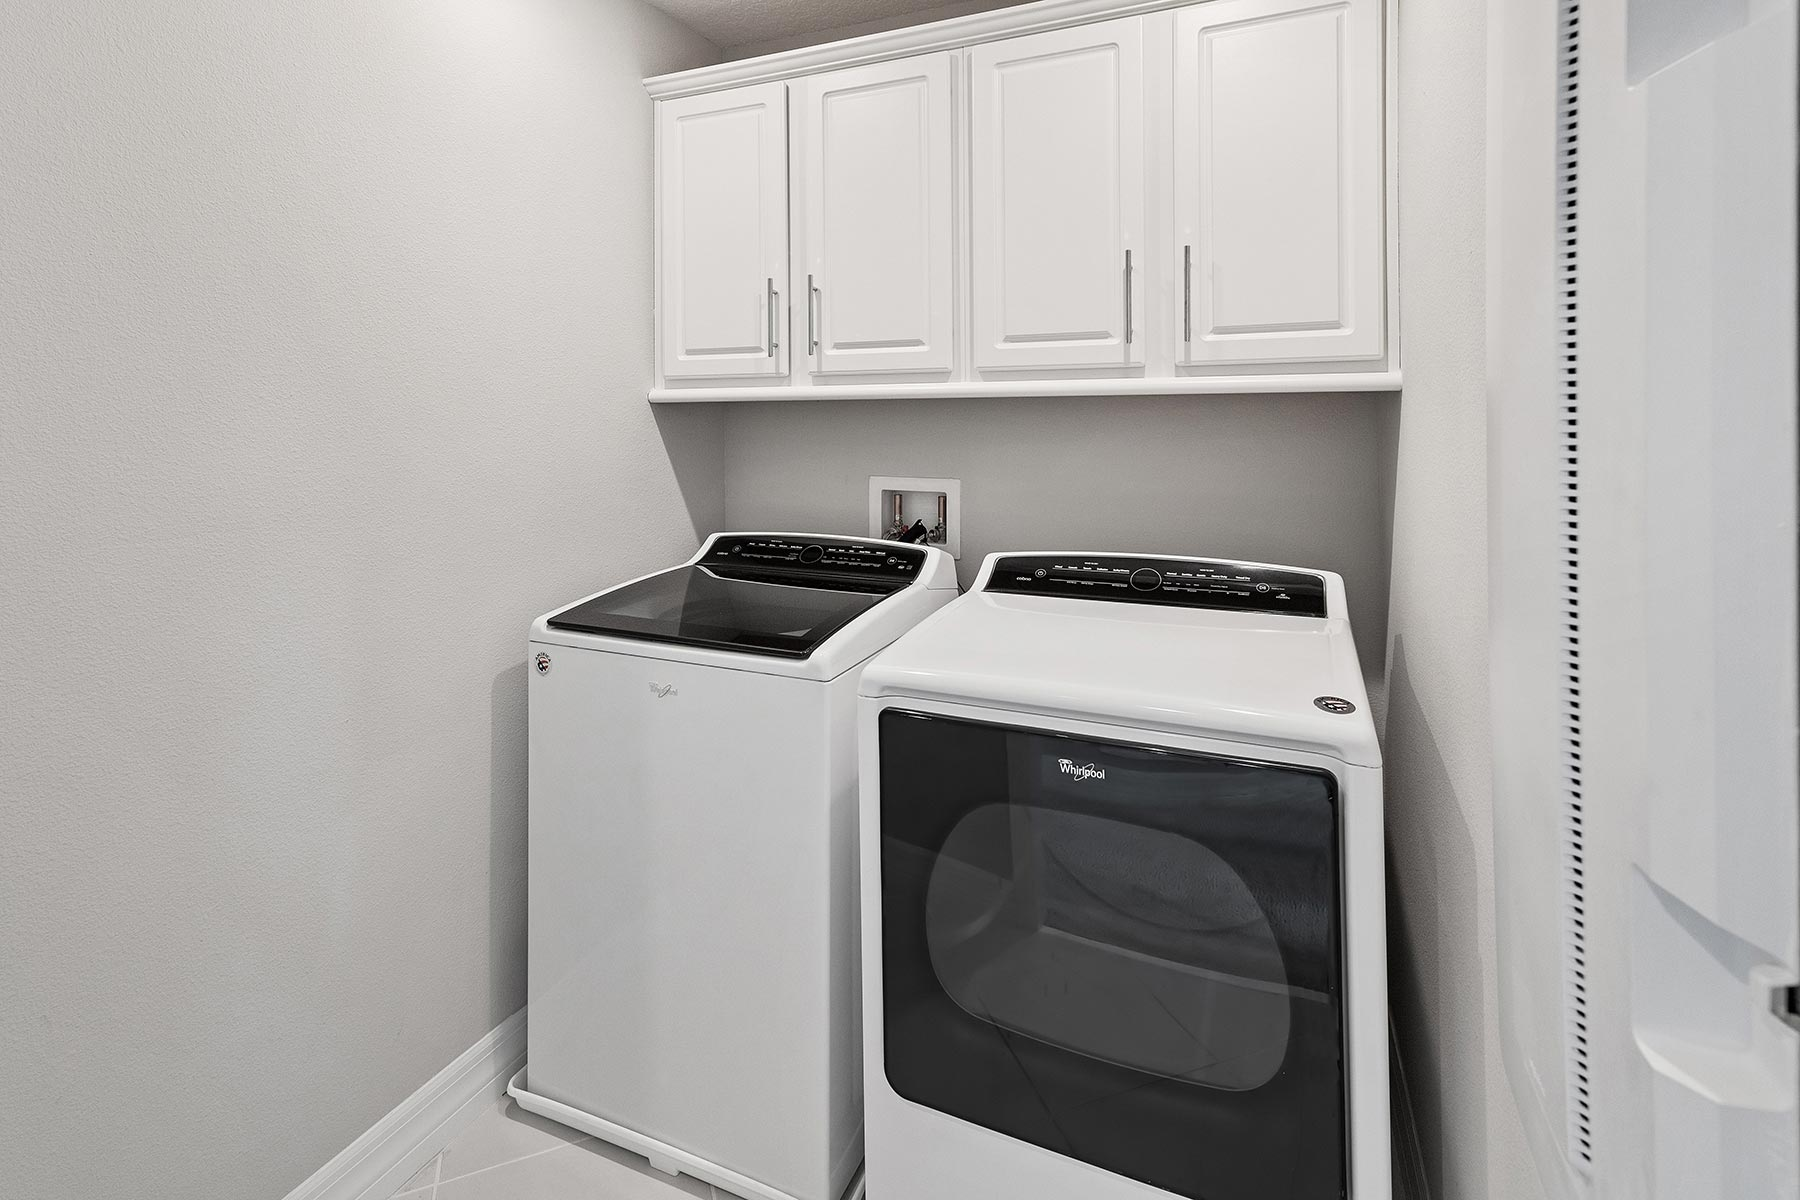 Campbell Plan Laundry at Tohoqua in Kissimmee Florida by Mattamy Homes